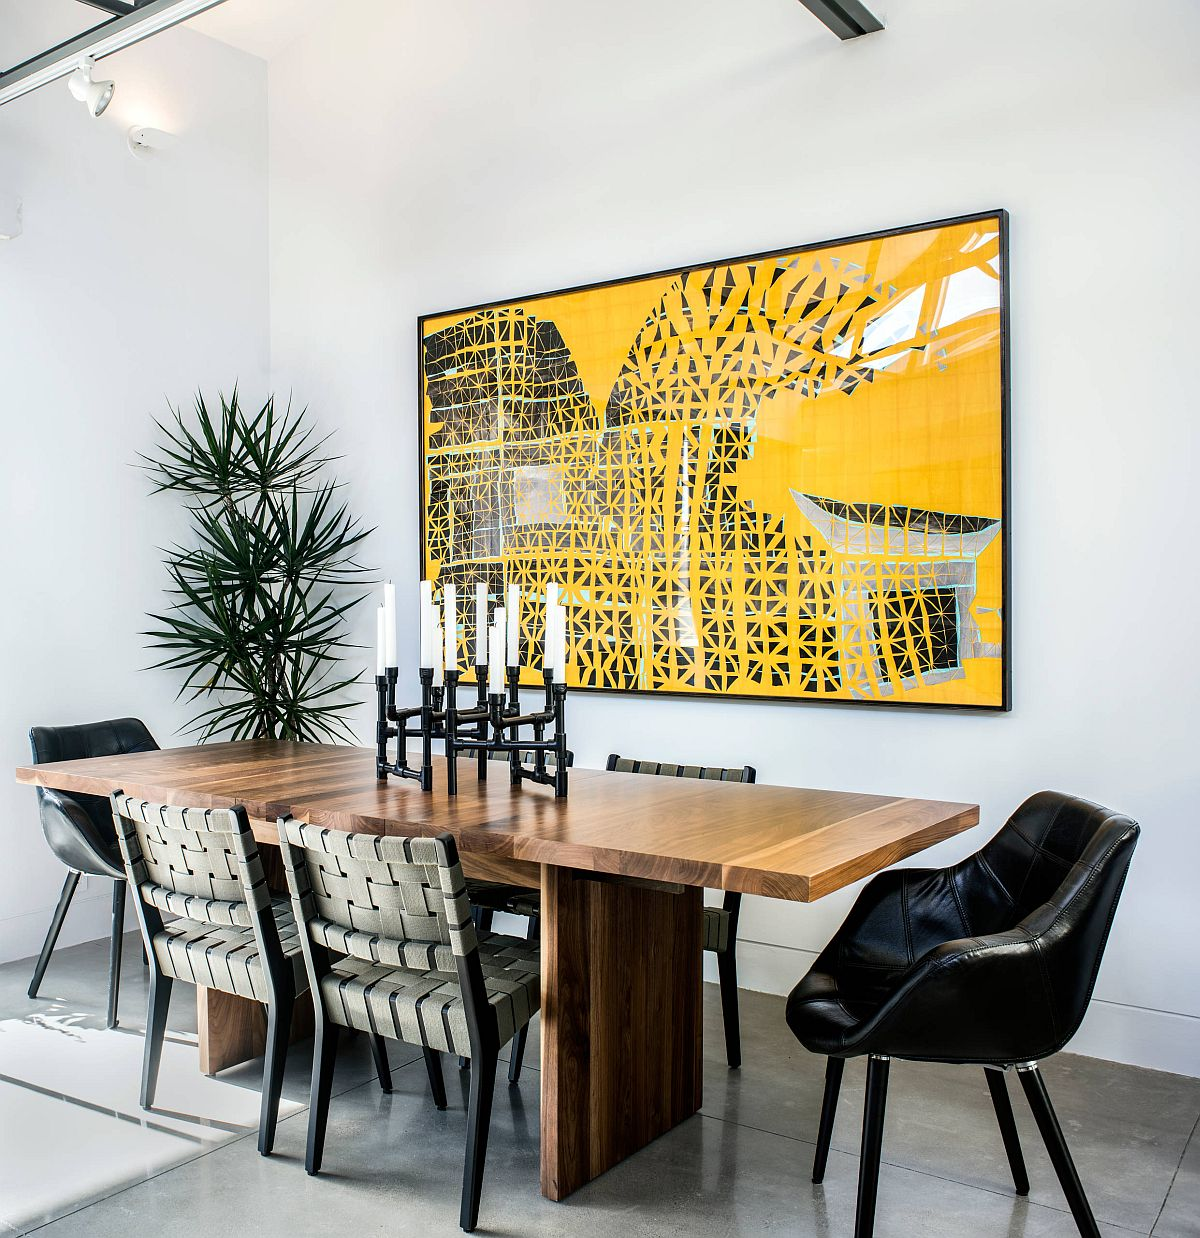 Wall art in this dining room adds bright yellow to a black and white space